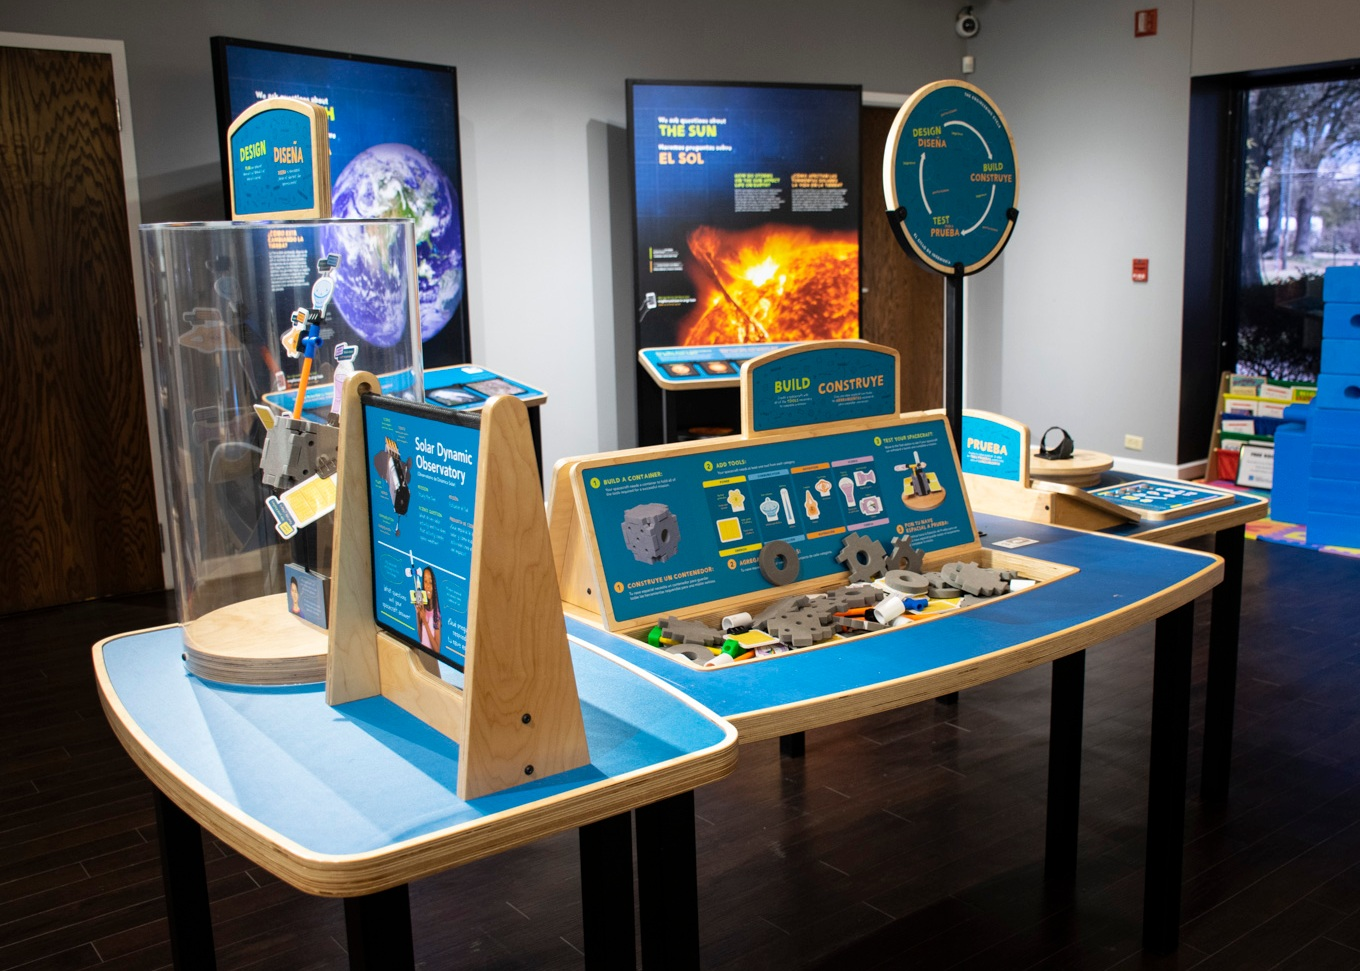 Design, build, and test your own spacecraft model that has key tools needed to complete a NASA mission at the Design>Build>Test station.